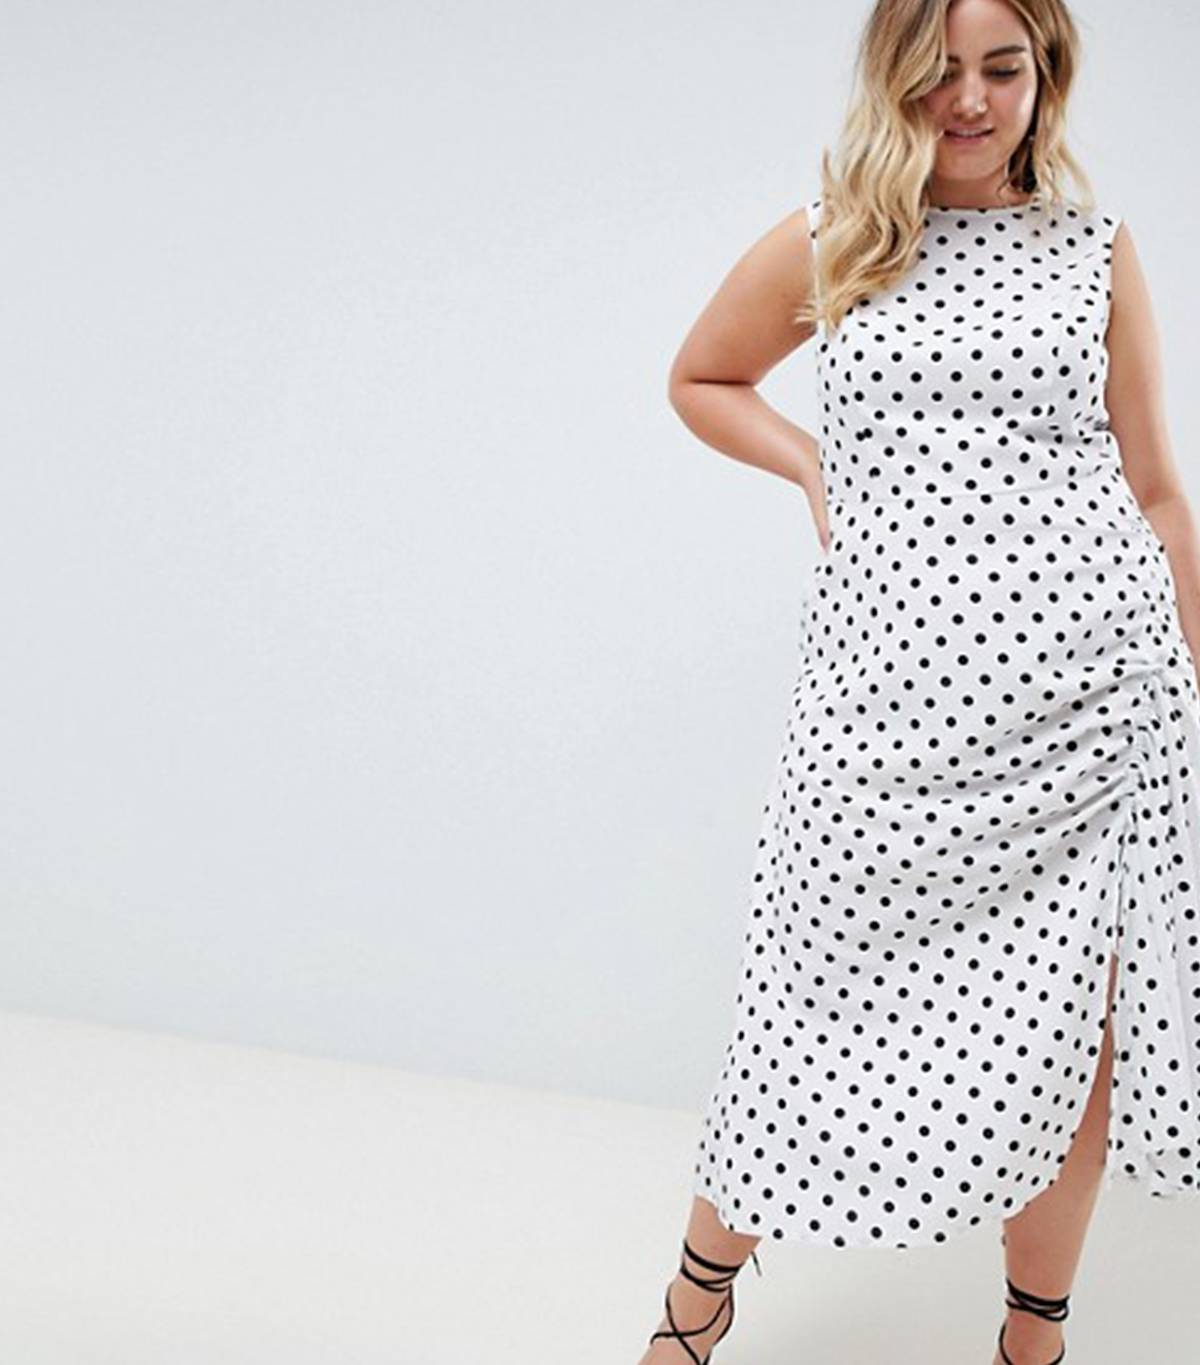 Stylish Women Outfits for under $100 (28)